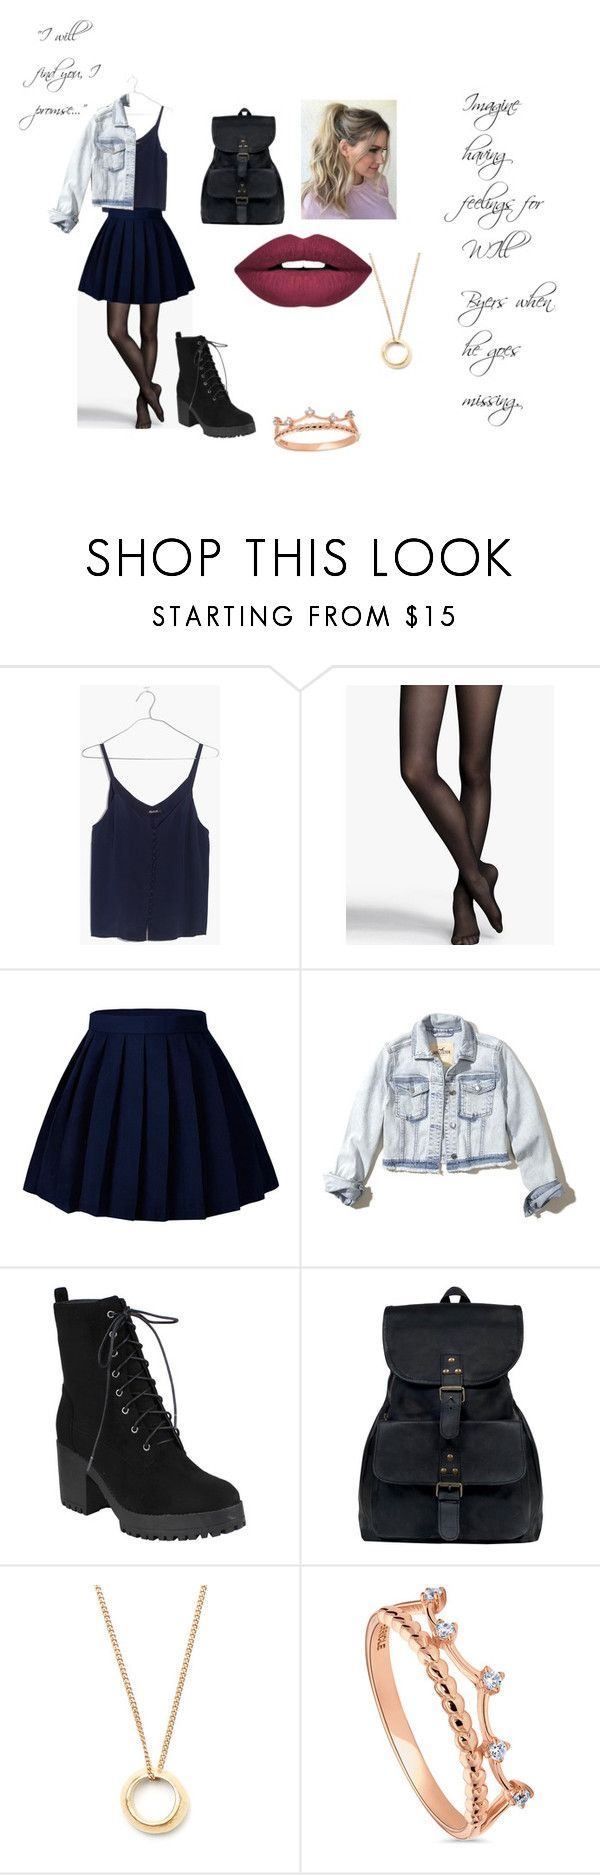 """""""Imagine Having Feelings for Will Byers"""" by kirstie04 ❤ liked on Polyvore featuring Madewell, Express, Hollister Co., Mahi, BERRICLE and Forever 21"""